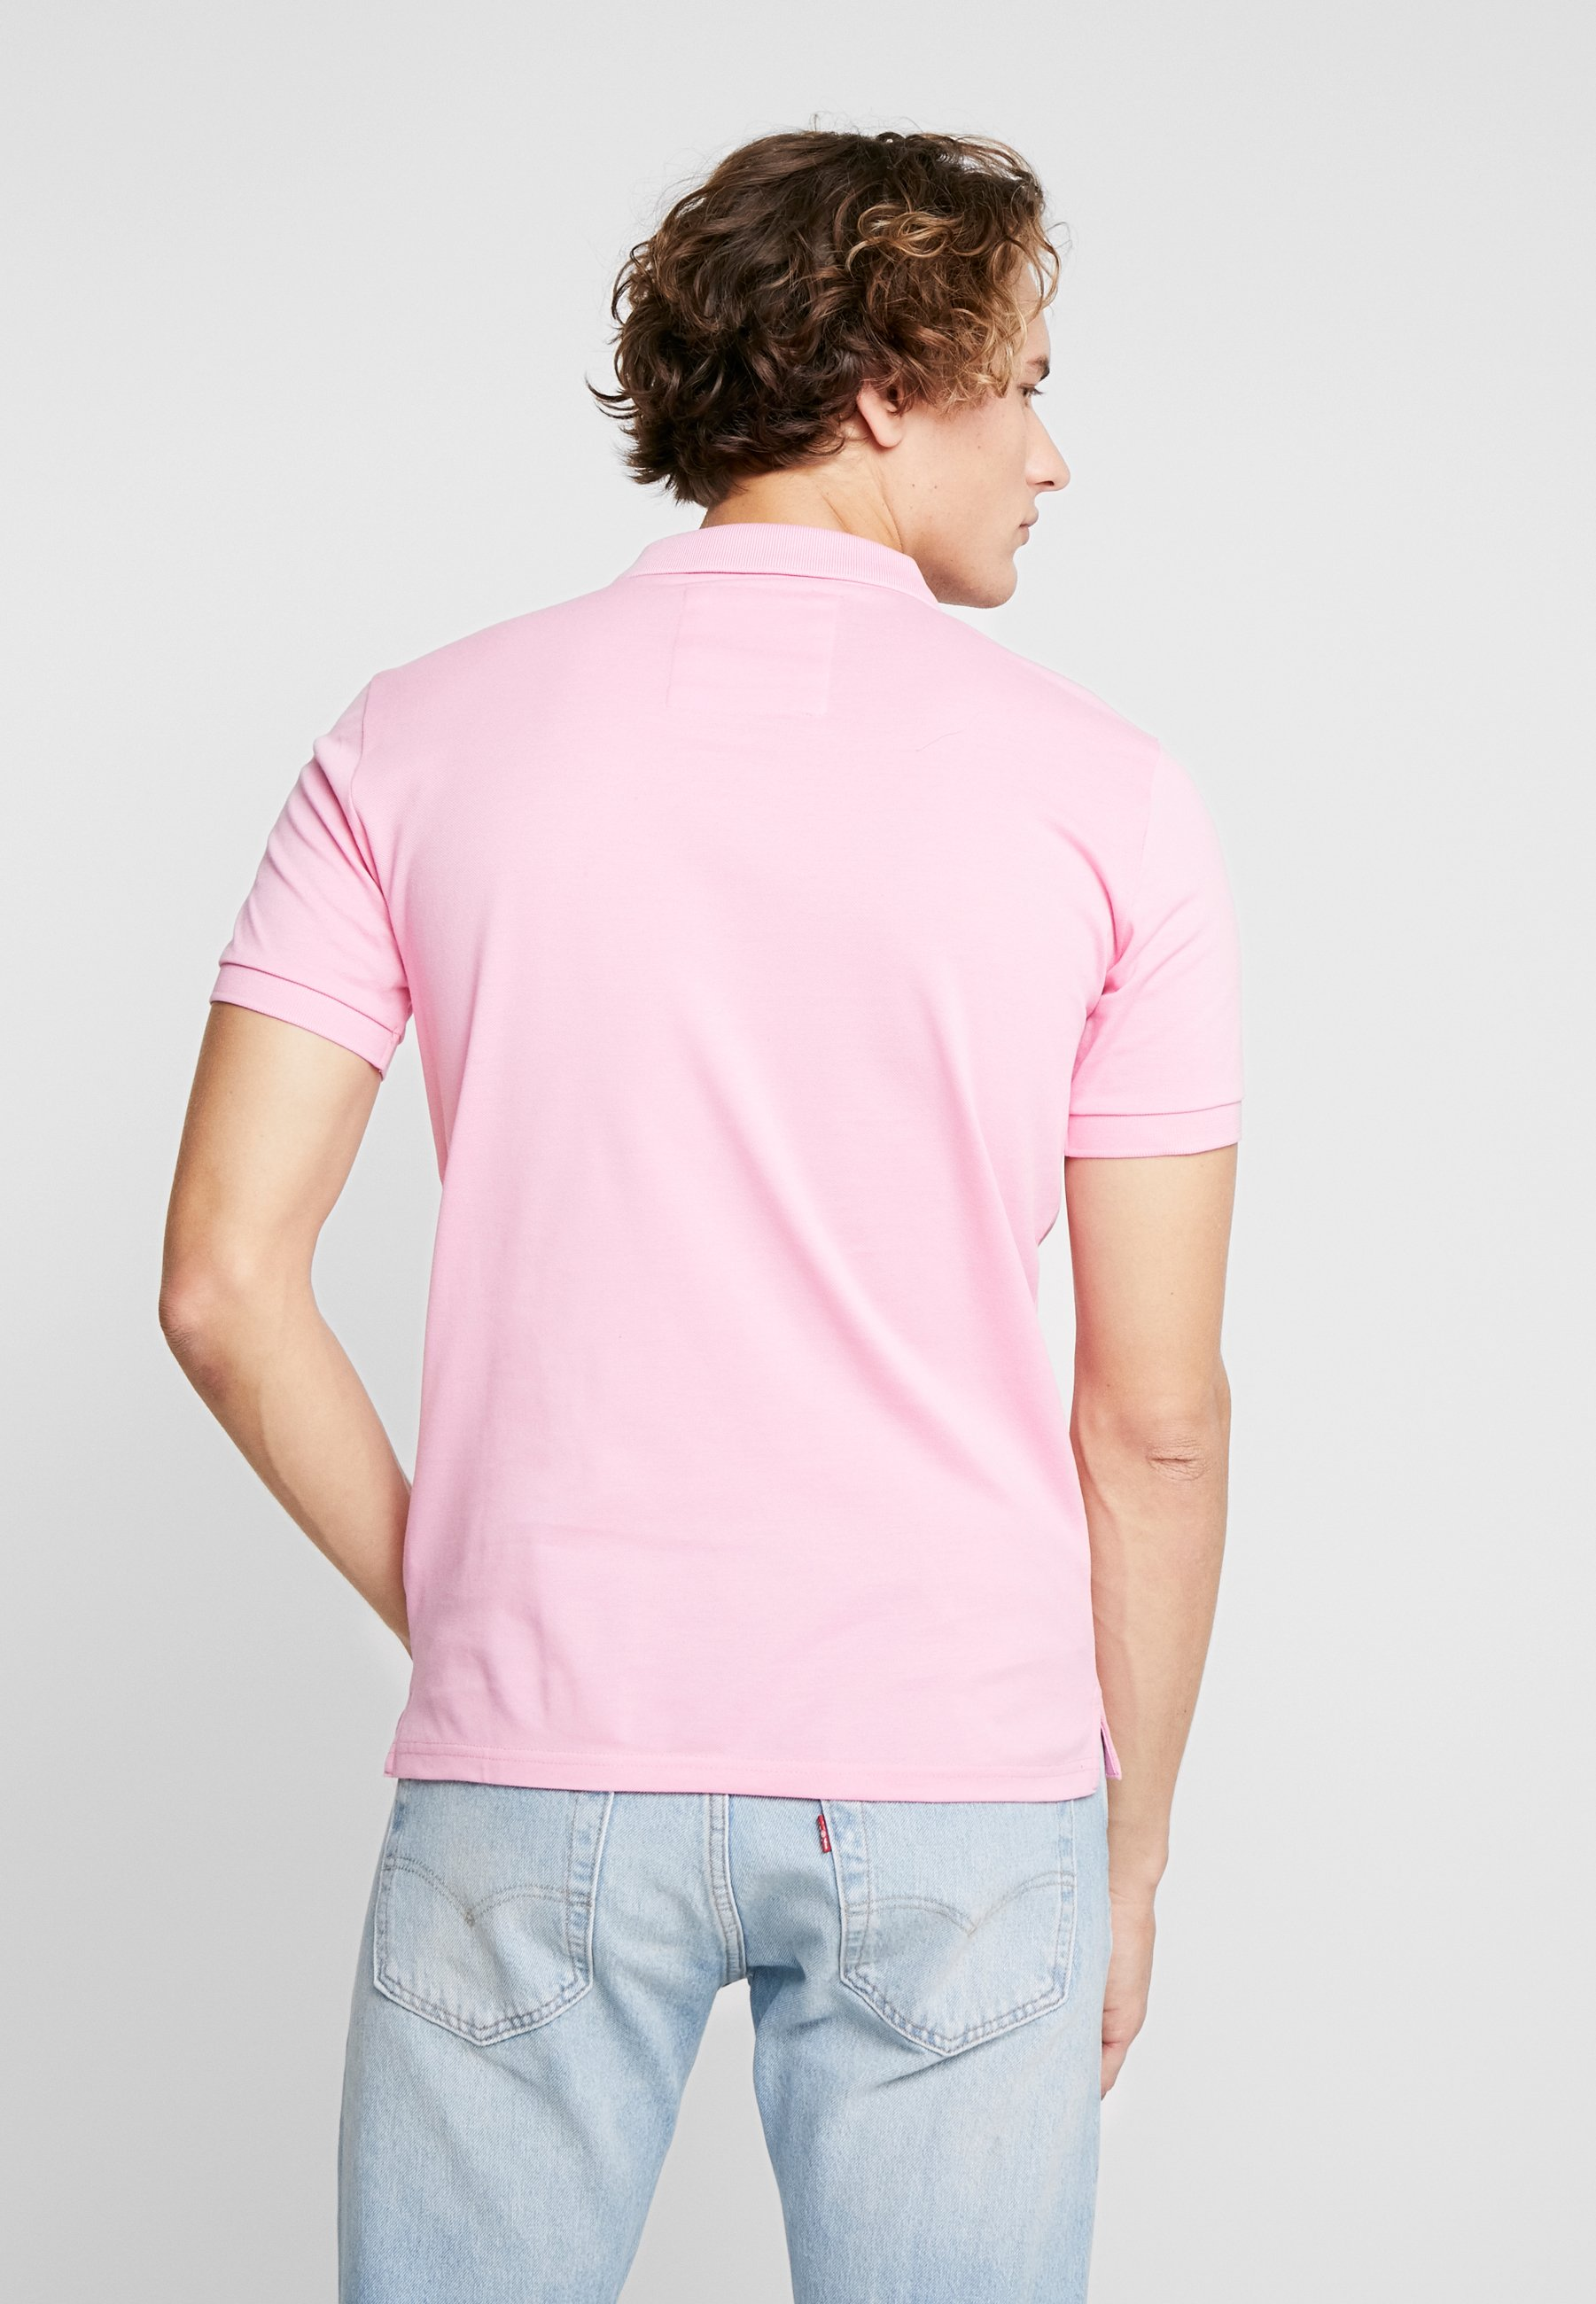 Superdry Prep Pink Classic Classic MicroPolo Superdry n8XOPkN0w